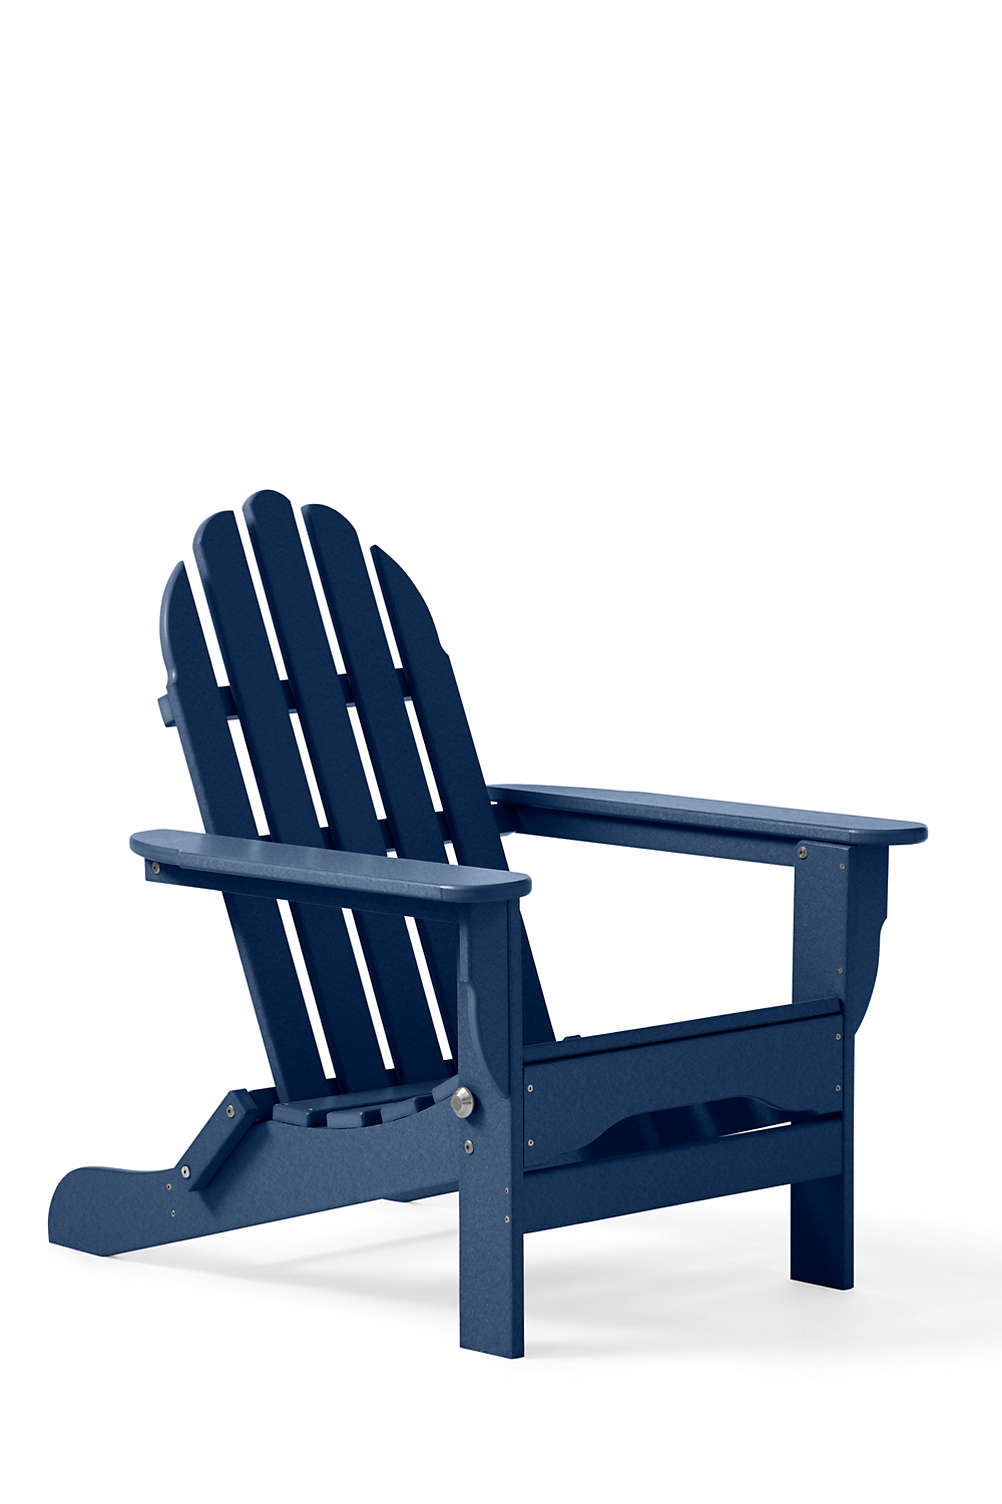 all weather recycled adirondack chair from lands end - Decorating Adirondack Chairs For Christmas